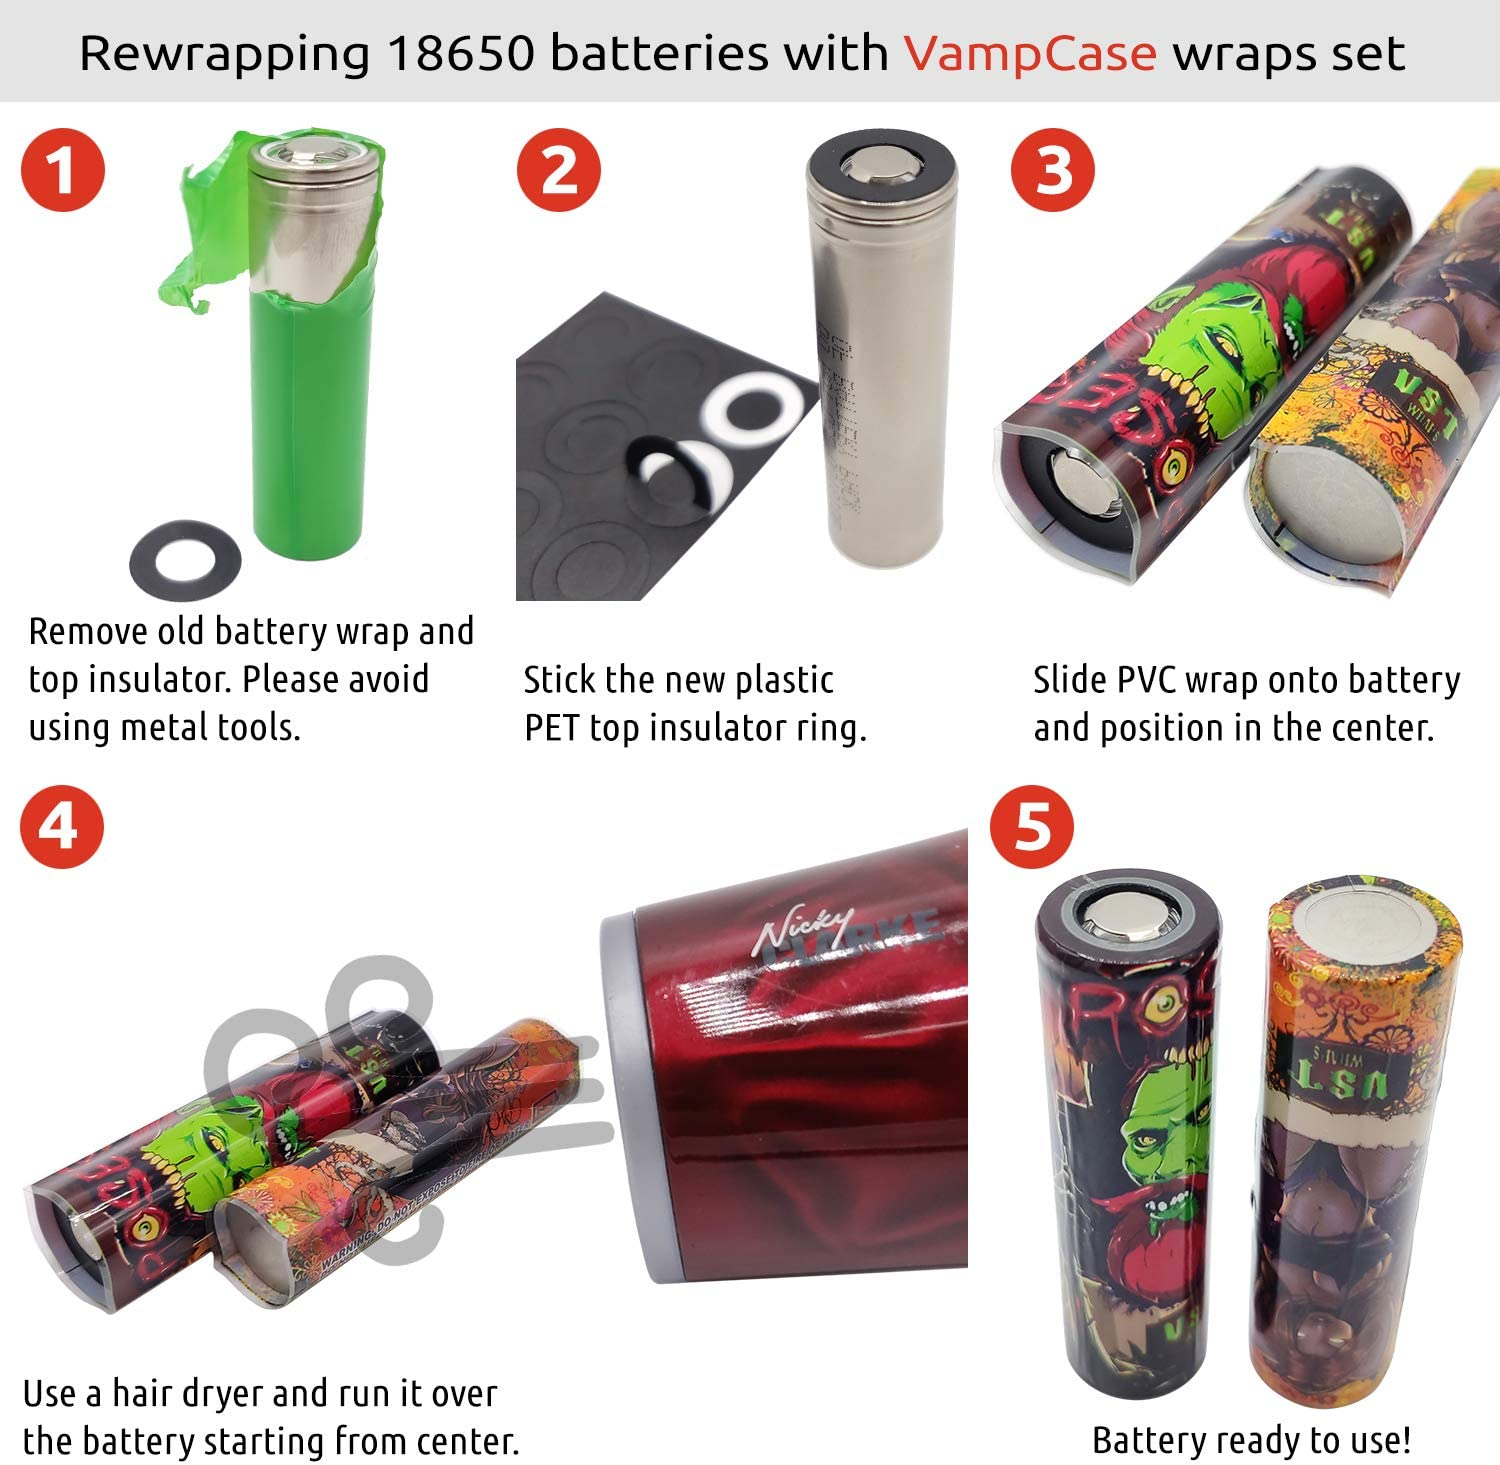 2pcs of Each 16pcs VampCase Rewrap Kit Wraps Heat Shrink Tubes Sleeves for 18650 Batteries Devils Serie Set of PVC Wraps + PET Top Insulators